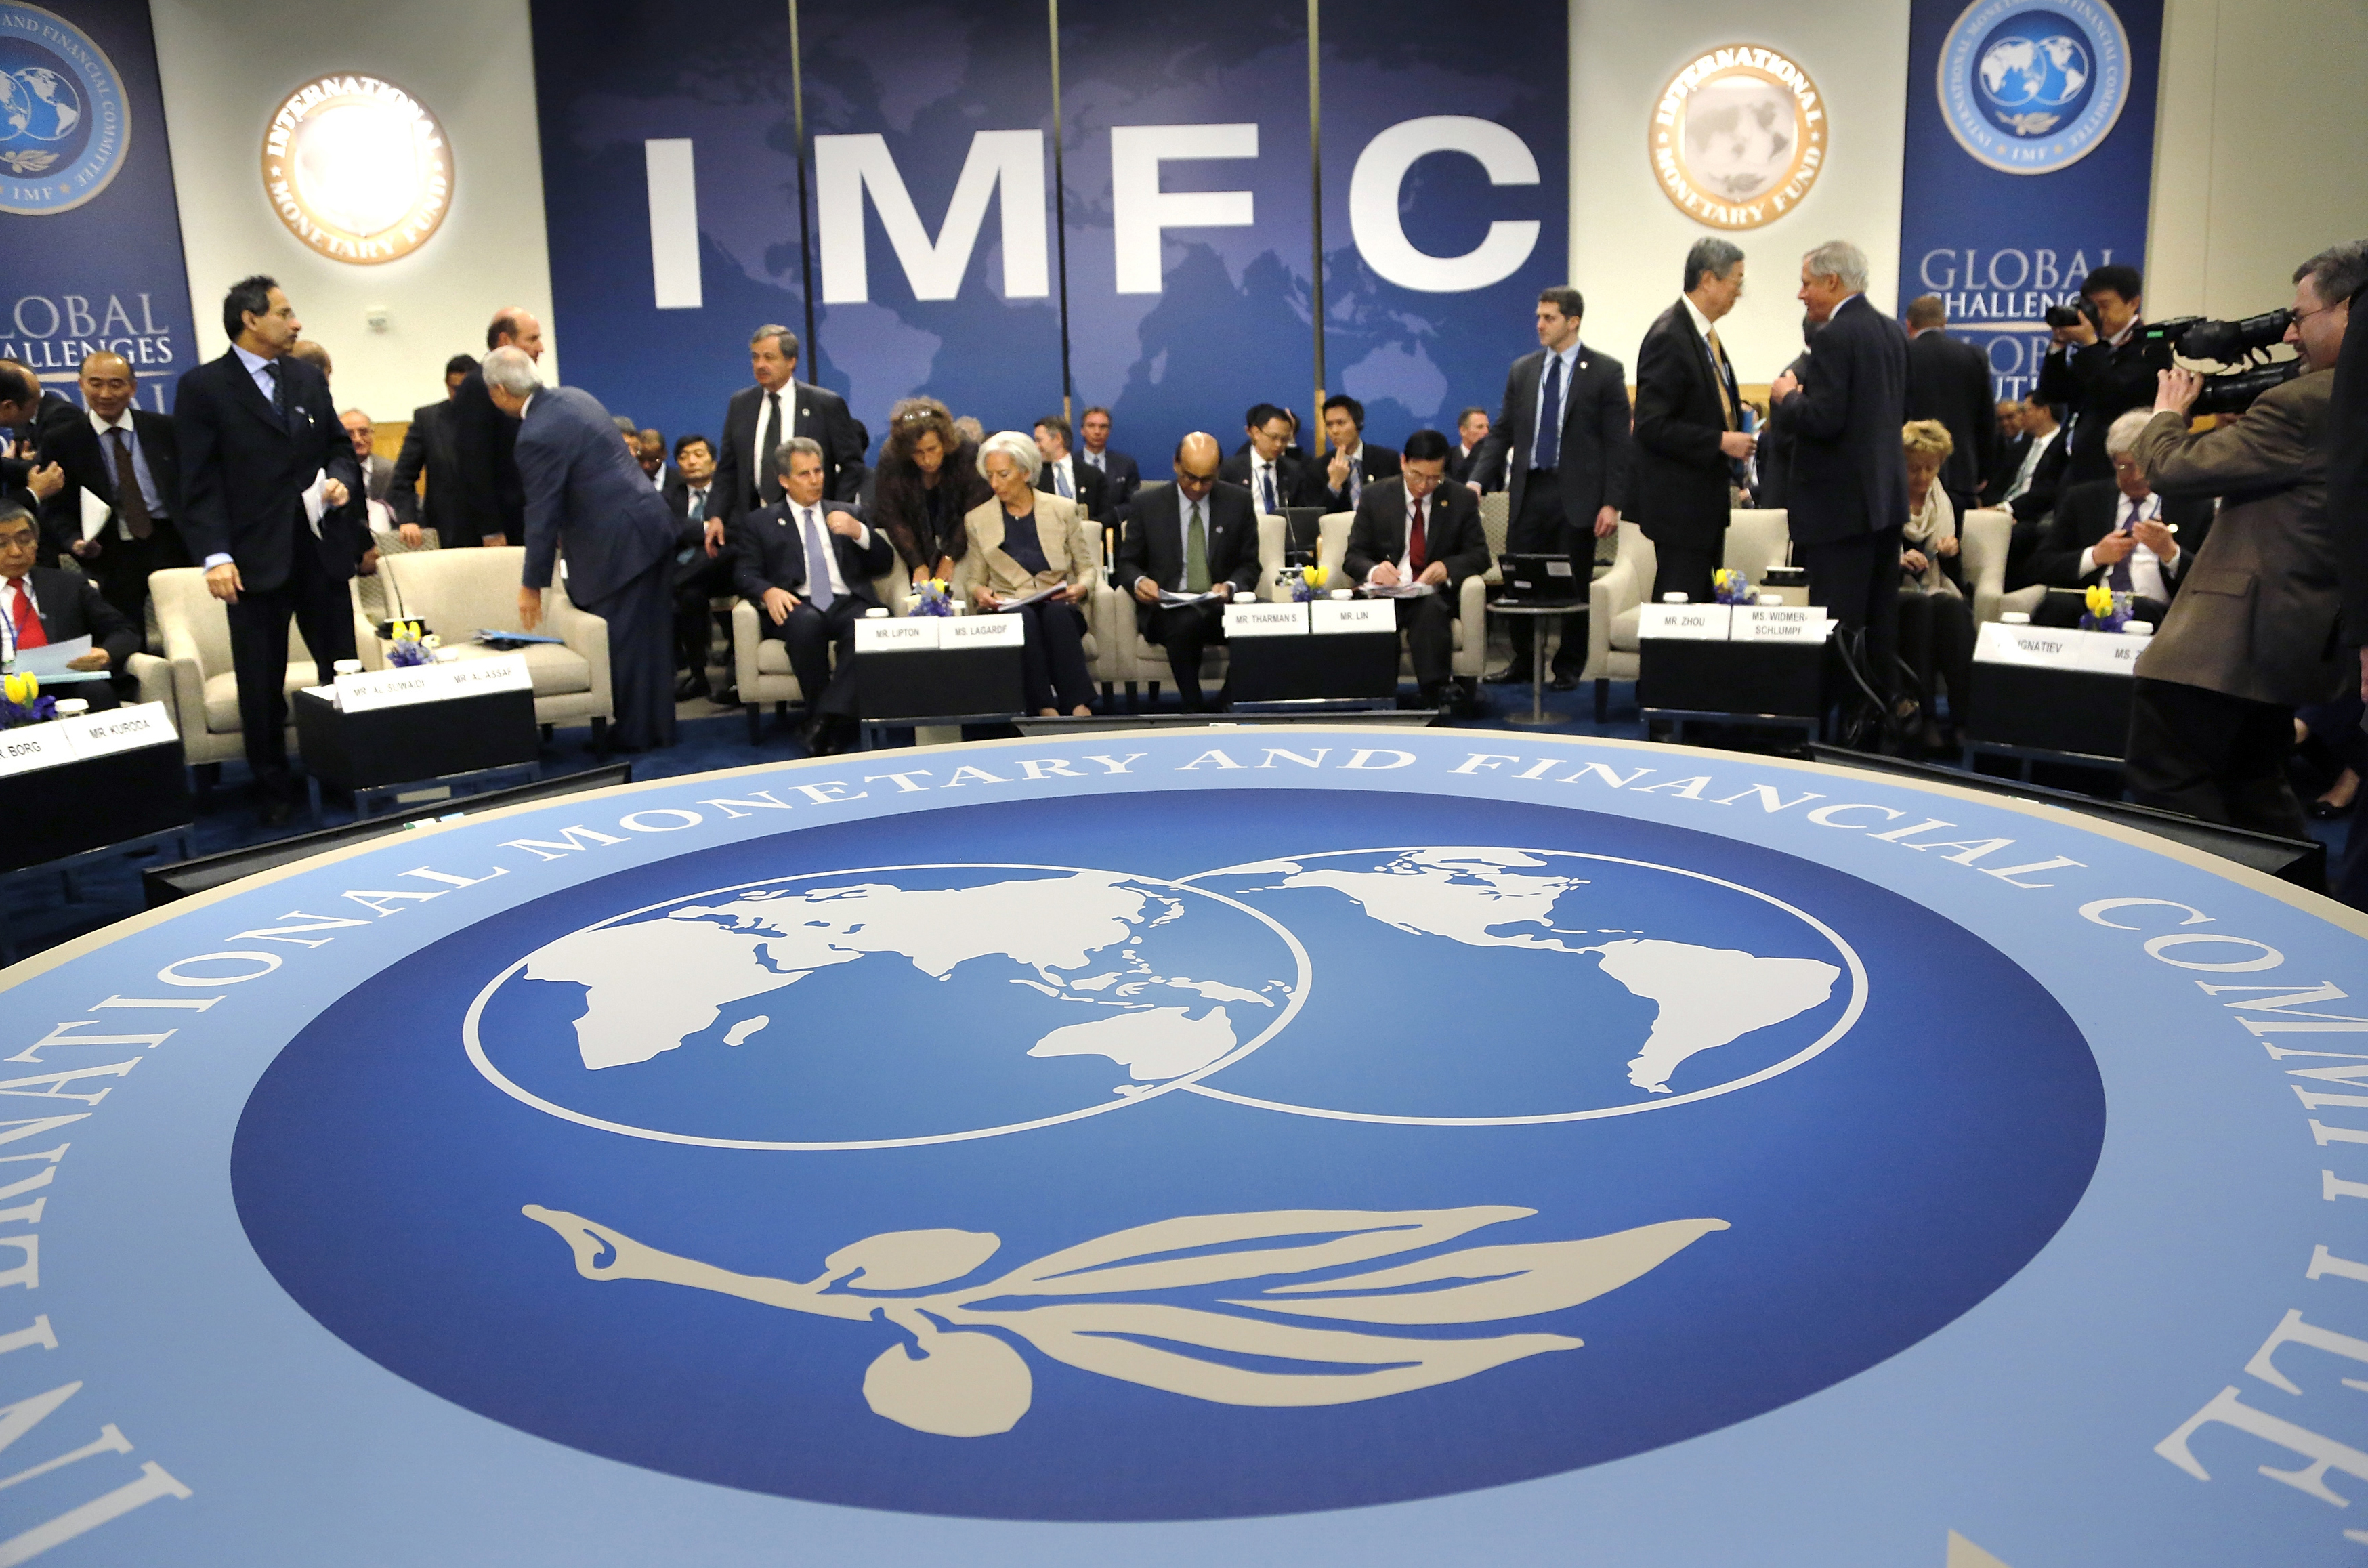 Delegates arrive for an IMFC plenary session during the IMF and World Bank spring meetings in Washington